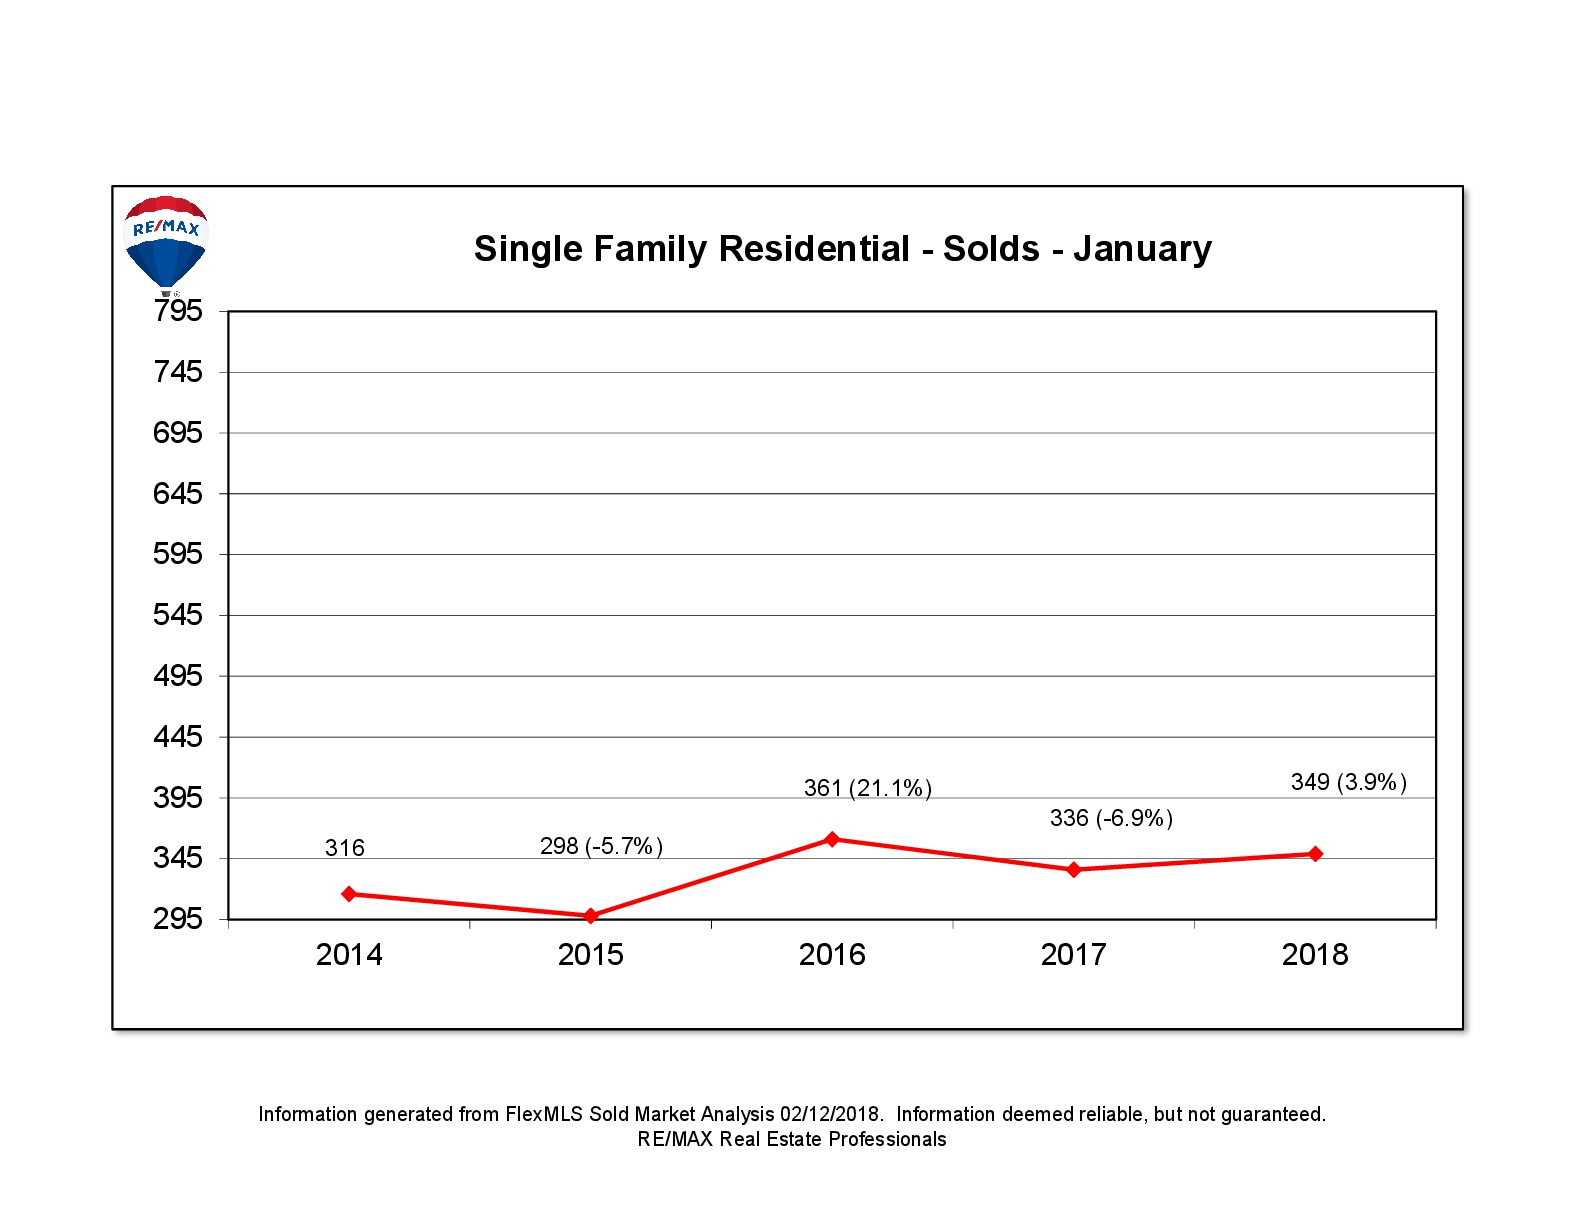 lansing-mi-house-for-sale-sold-homes-price-average-remax-realtor-january-real-estate